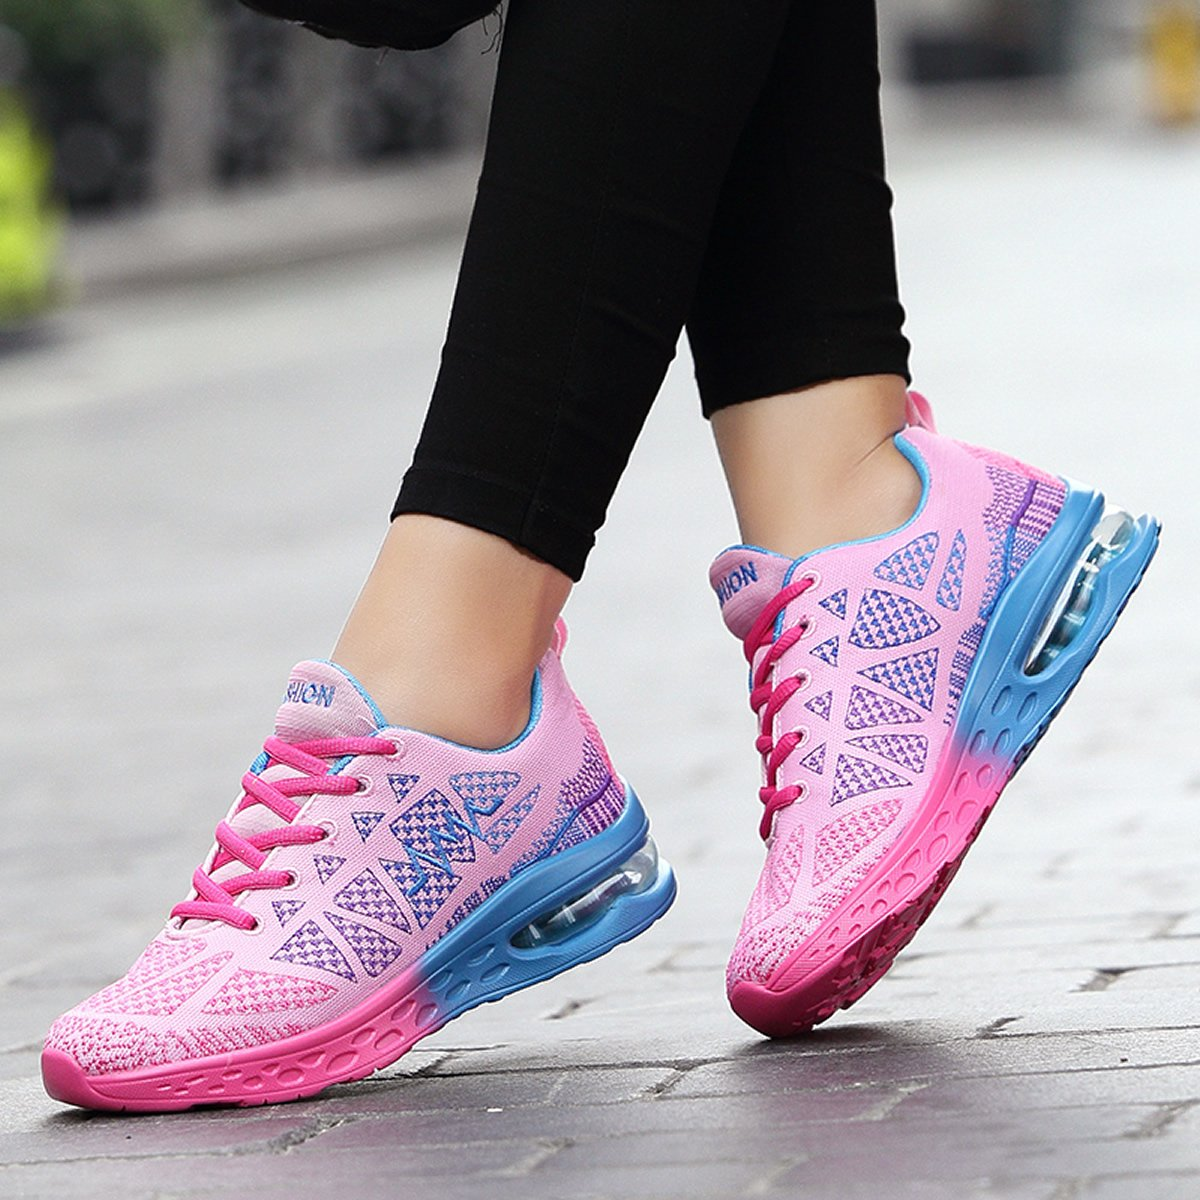 JARLIF Women's Athletic Running Sneakers Fashion Sport Air Fitness Workout US5.5-10 Gym Jogging Walking Shoes US5.5-10 Workout B076D21DRD 7.5 B(M) US|Pink 5c4dab